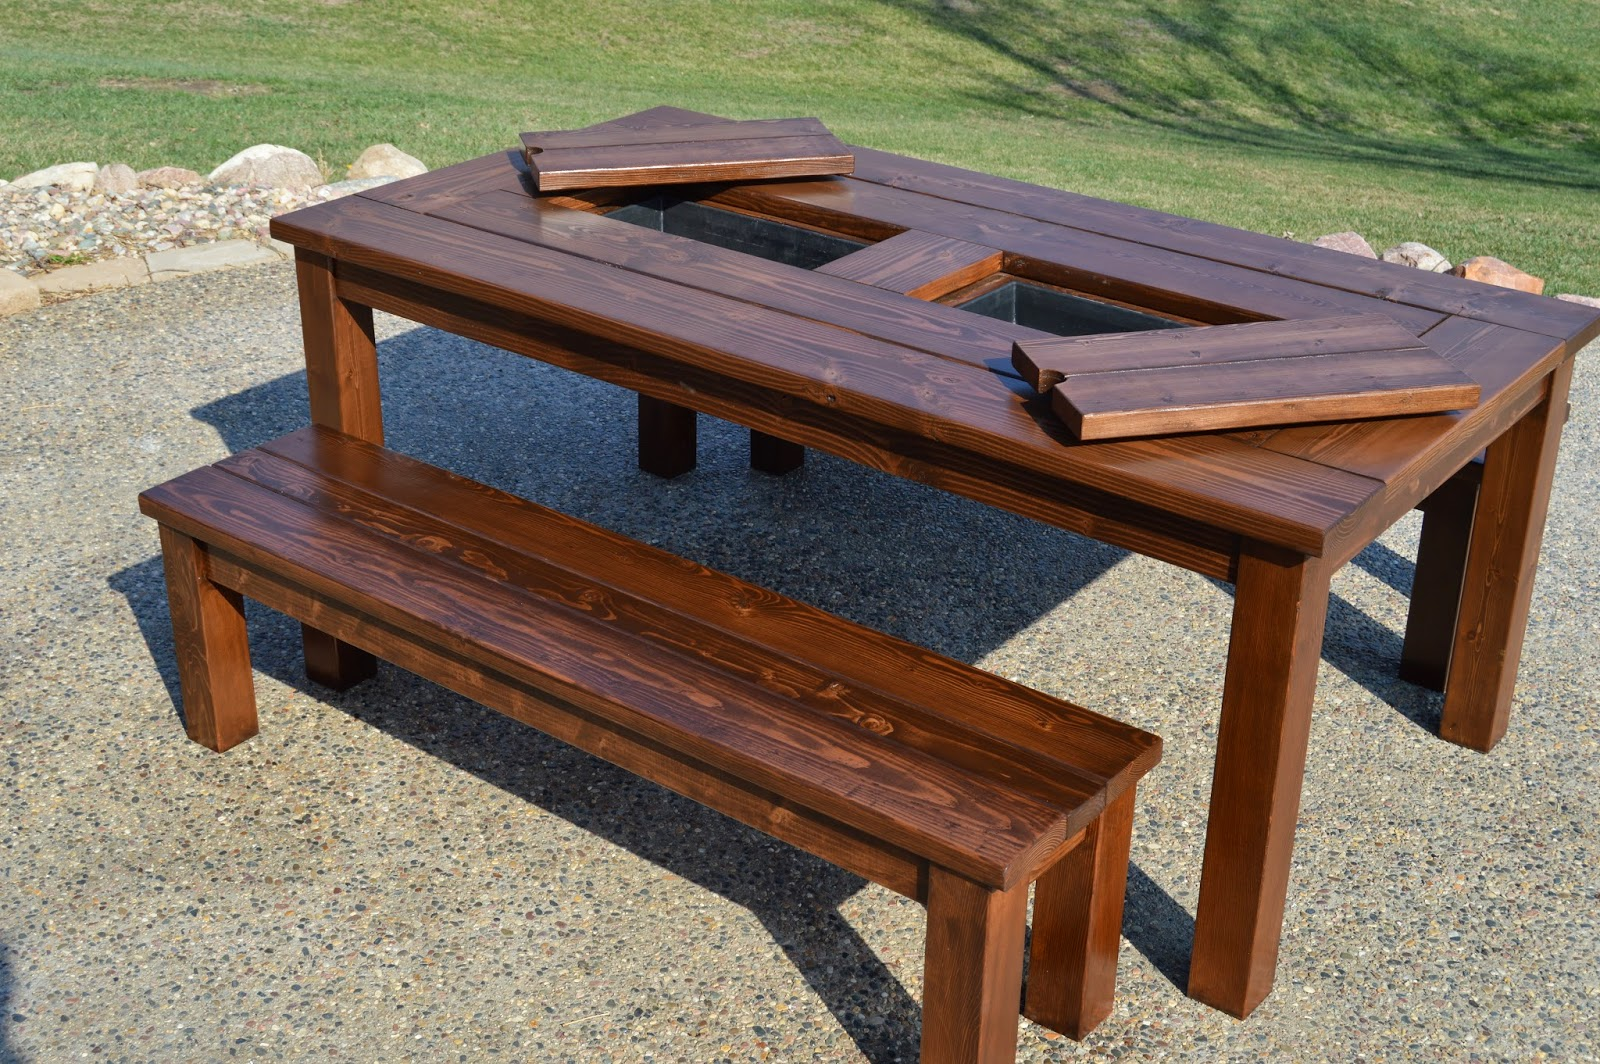 Kruse 39 s workshop patio party table with built in beer for Wooden beer cooler plans